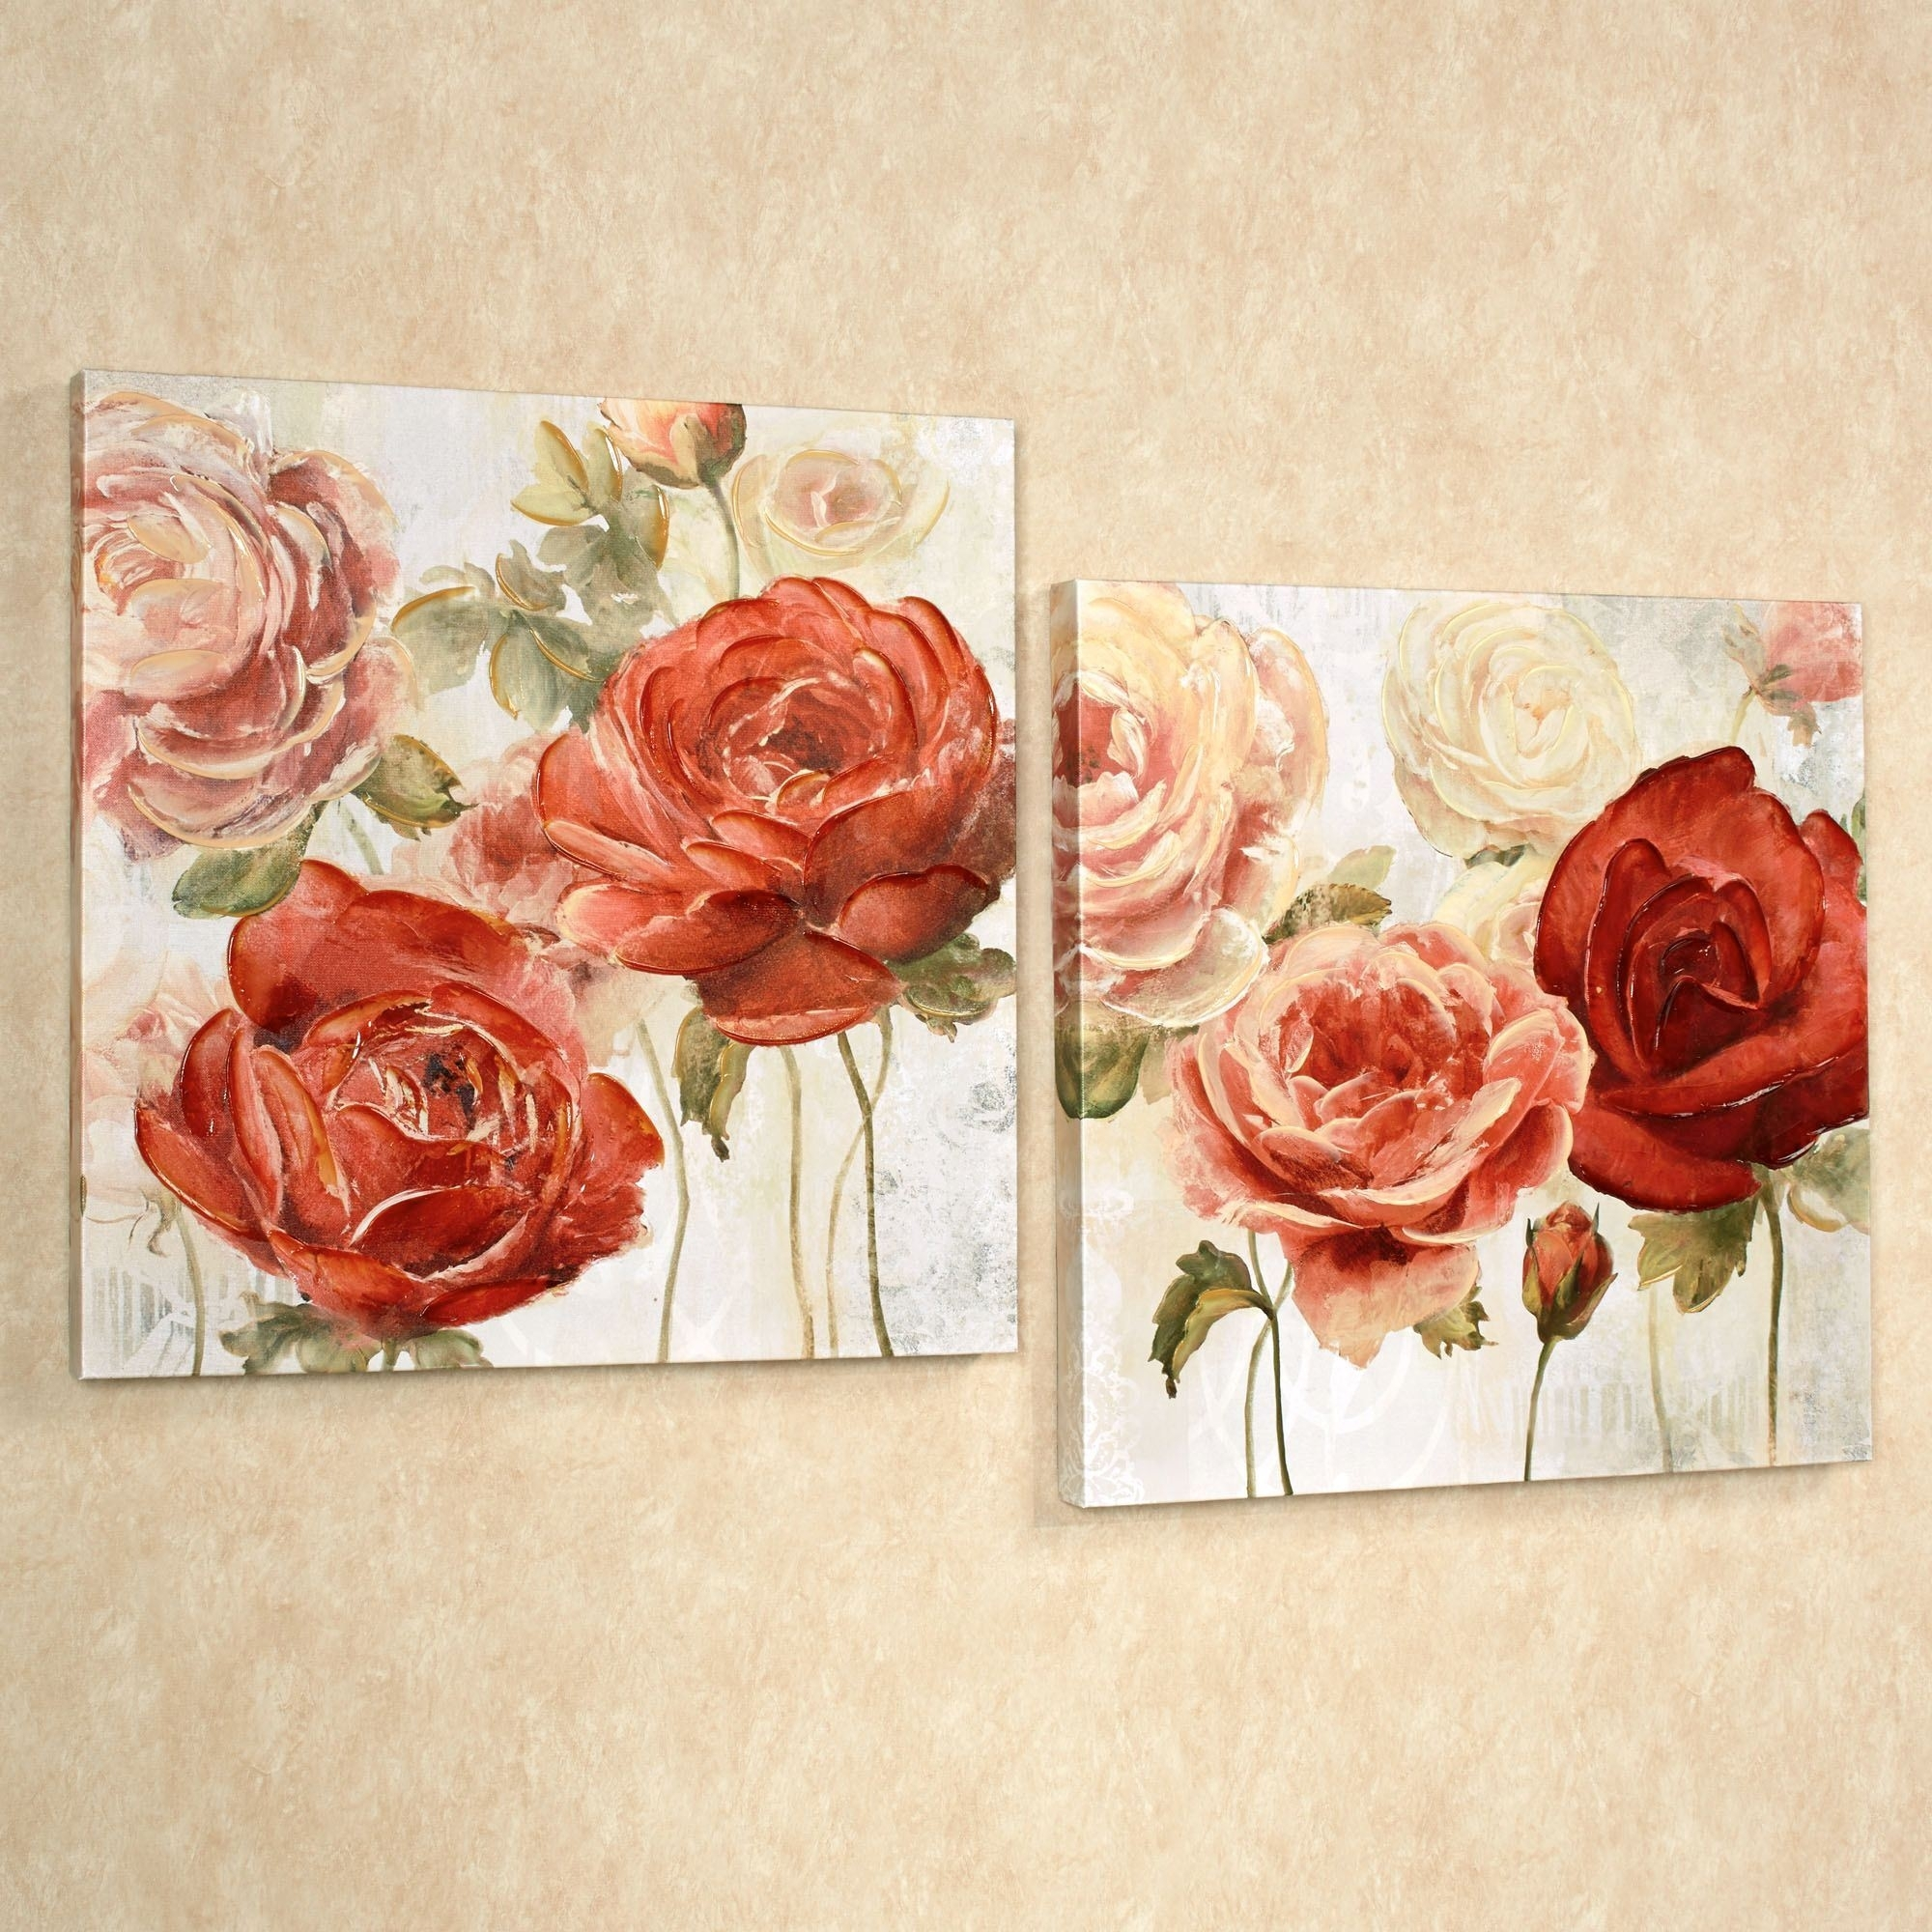 Radiant Blooms Rose Floral Canvas Wall Art Set Inside Most Recently Released Roses Canvas Wall Art (Gallery 5 of 15)